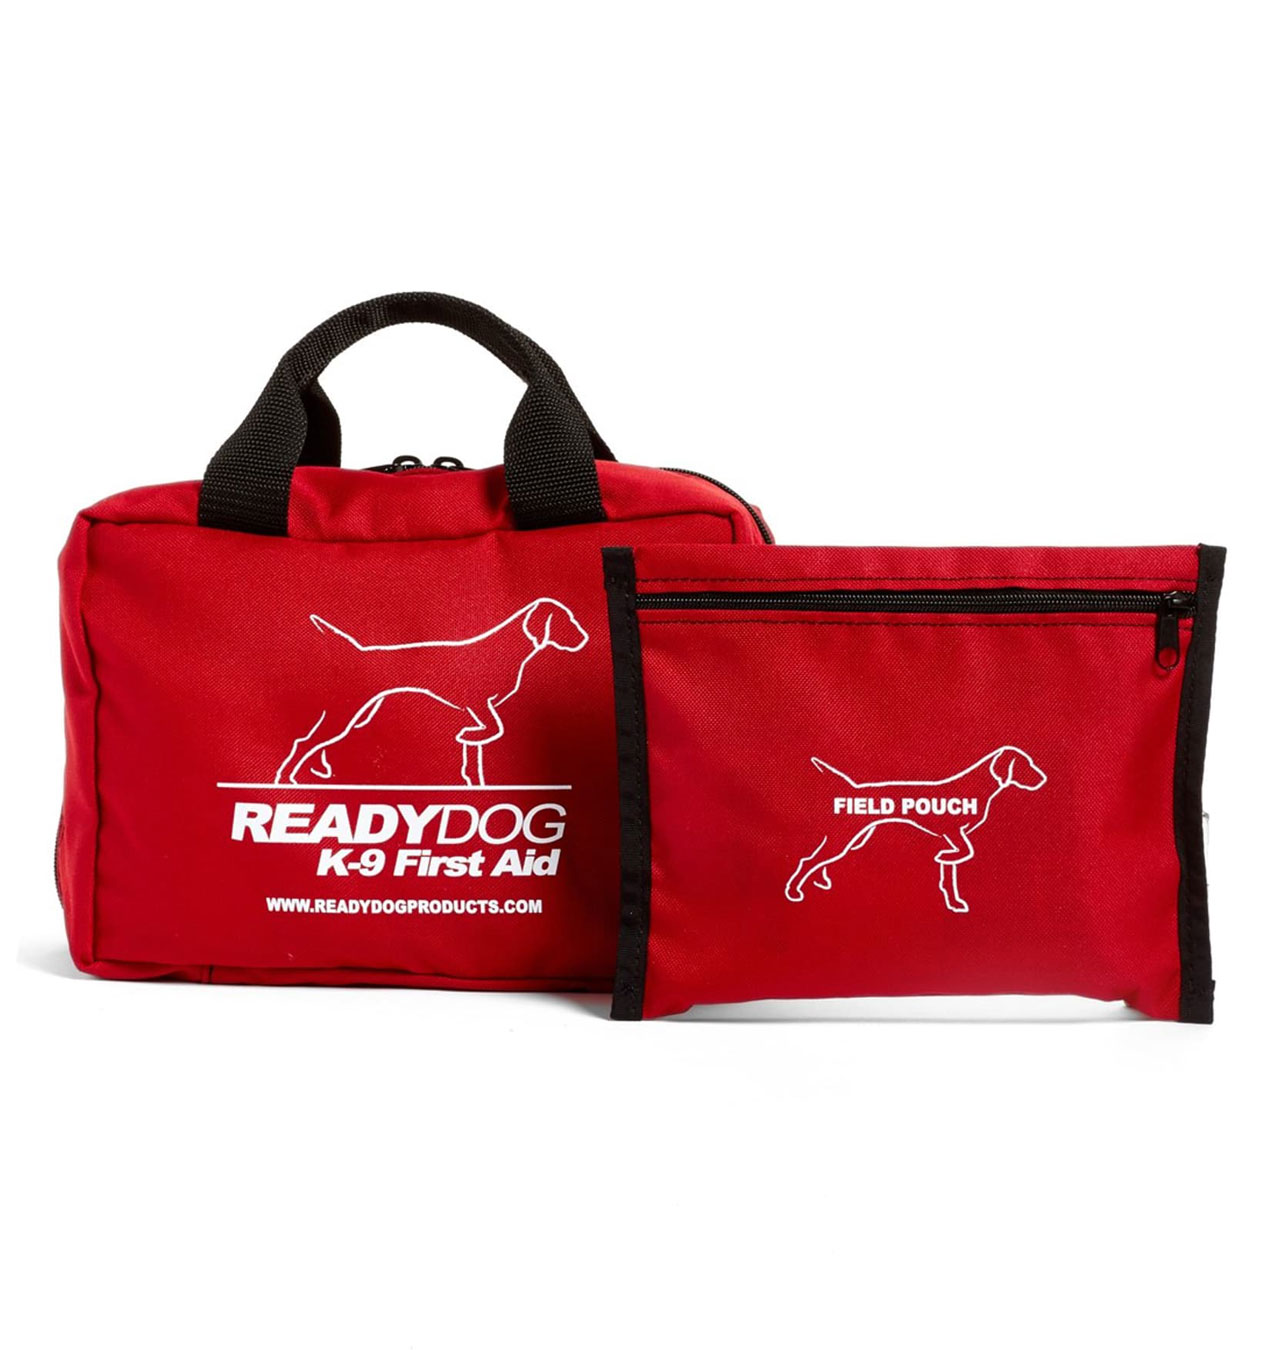 Filson - Readydog K-9 First Aid Kit